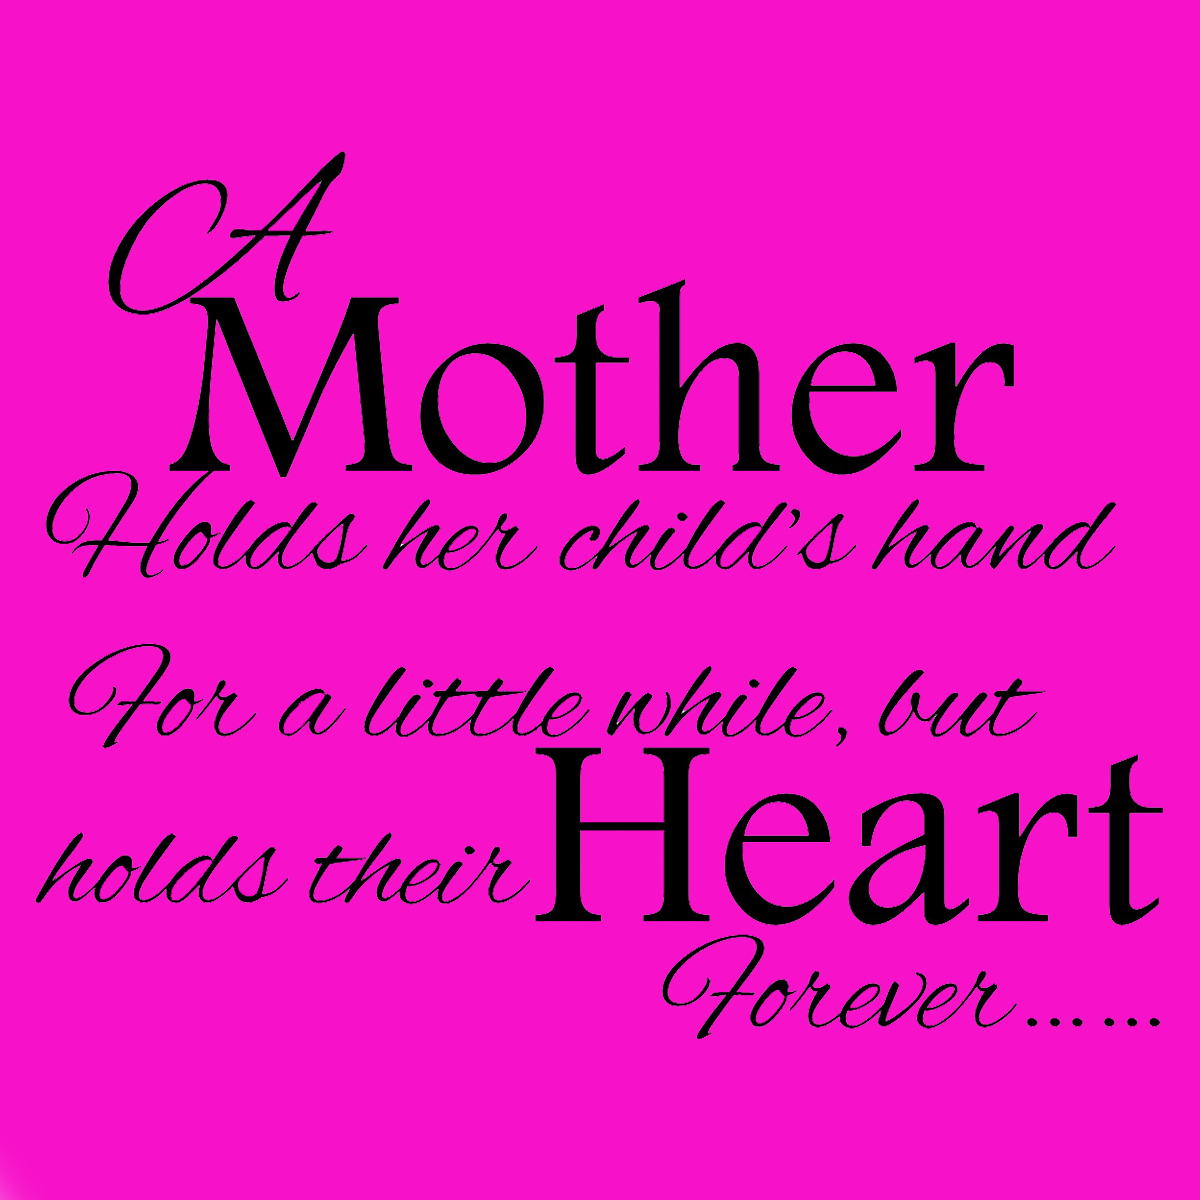 Motherhood Quotes For Facebook. QuotesGram